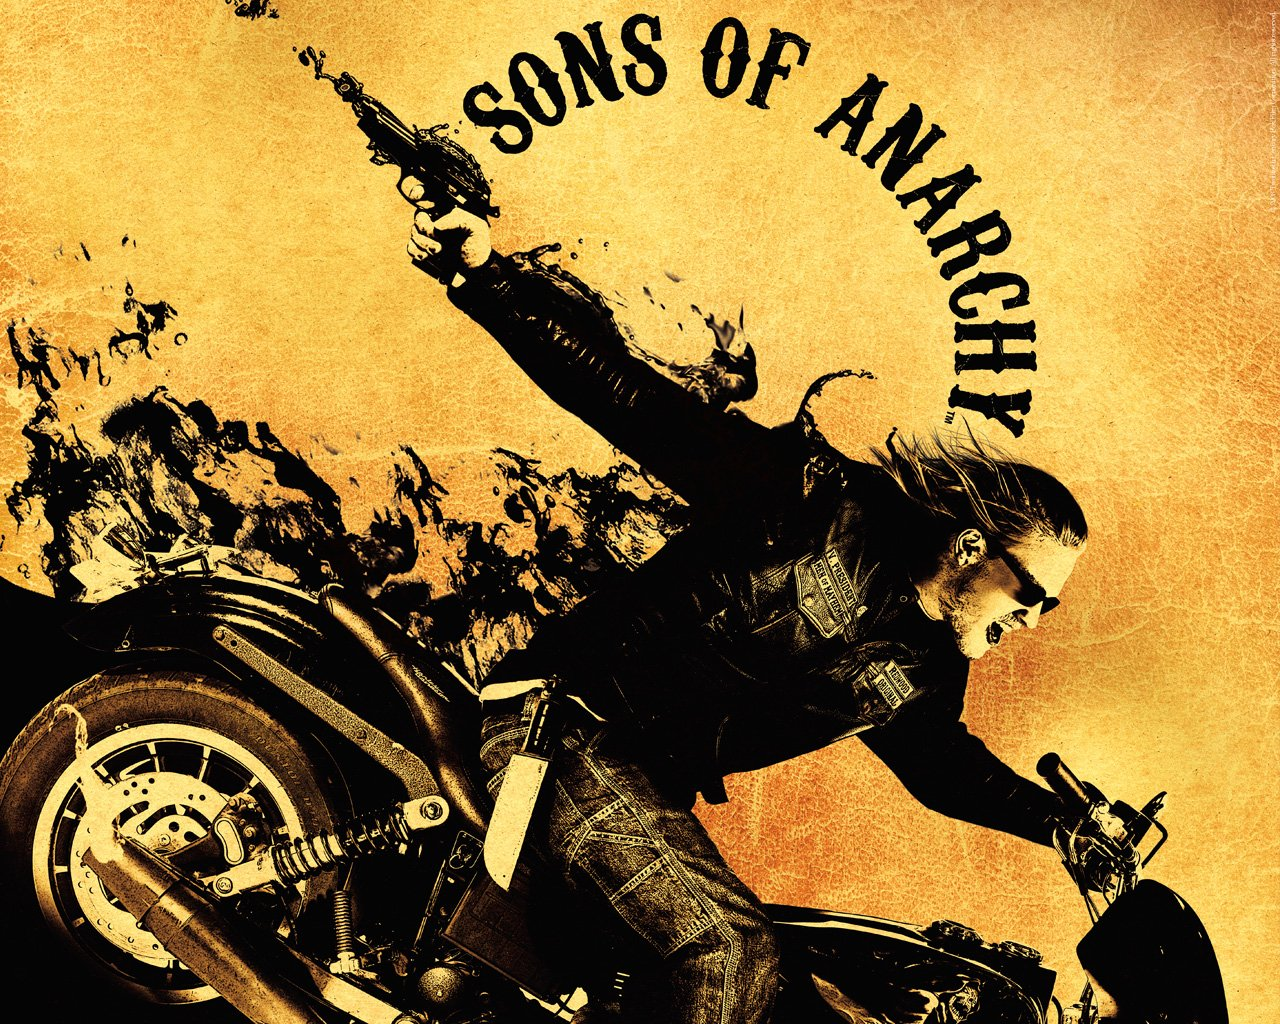 Free Download Wallpaper Name Sons Of Anarchy Wallpapers Stay1009